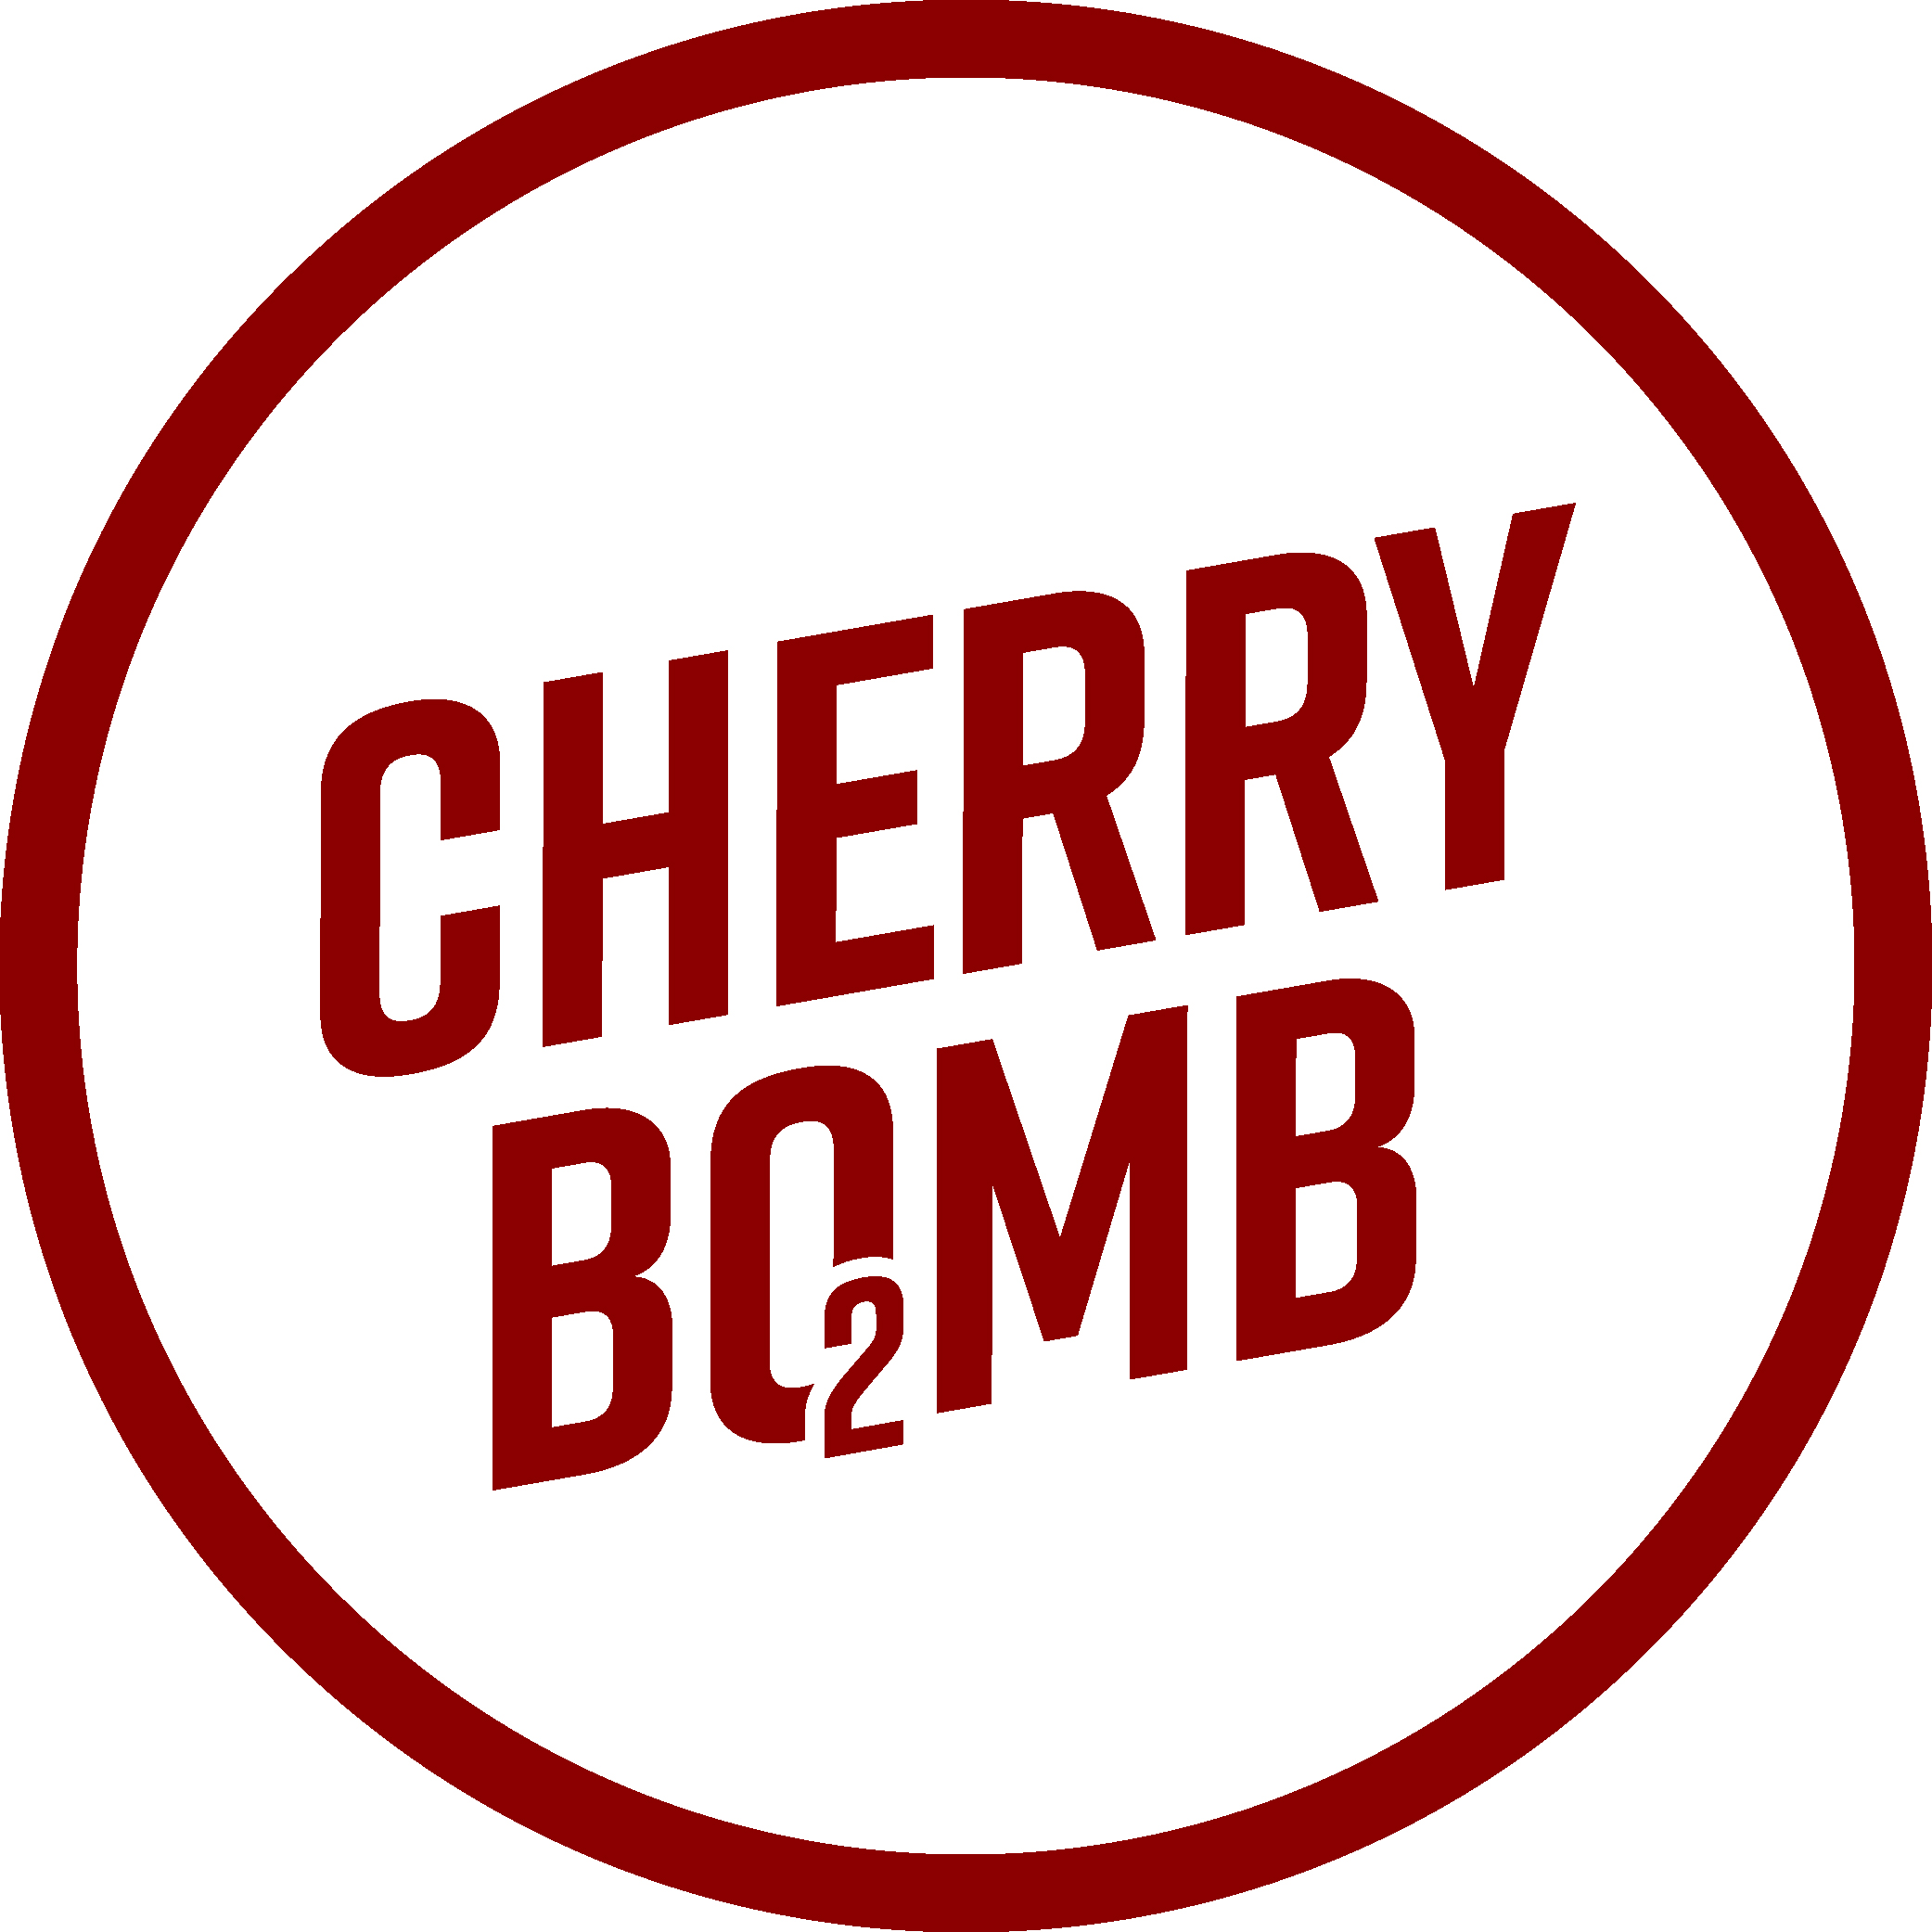 Cherry Bo2mb is now offered Nationwide Through Mr. Checkout\'s Direct Store Delivery Distributors.